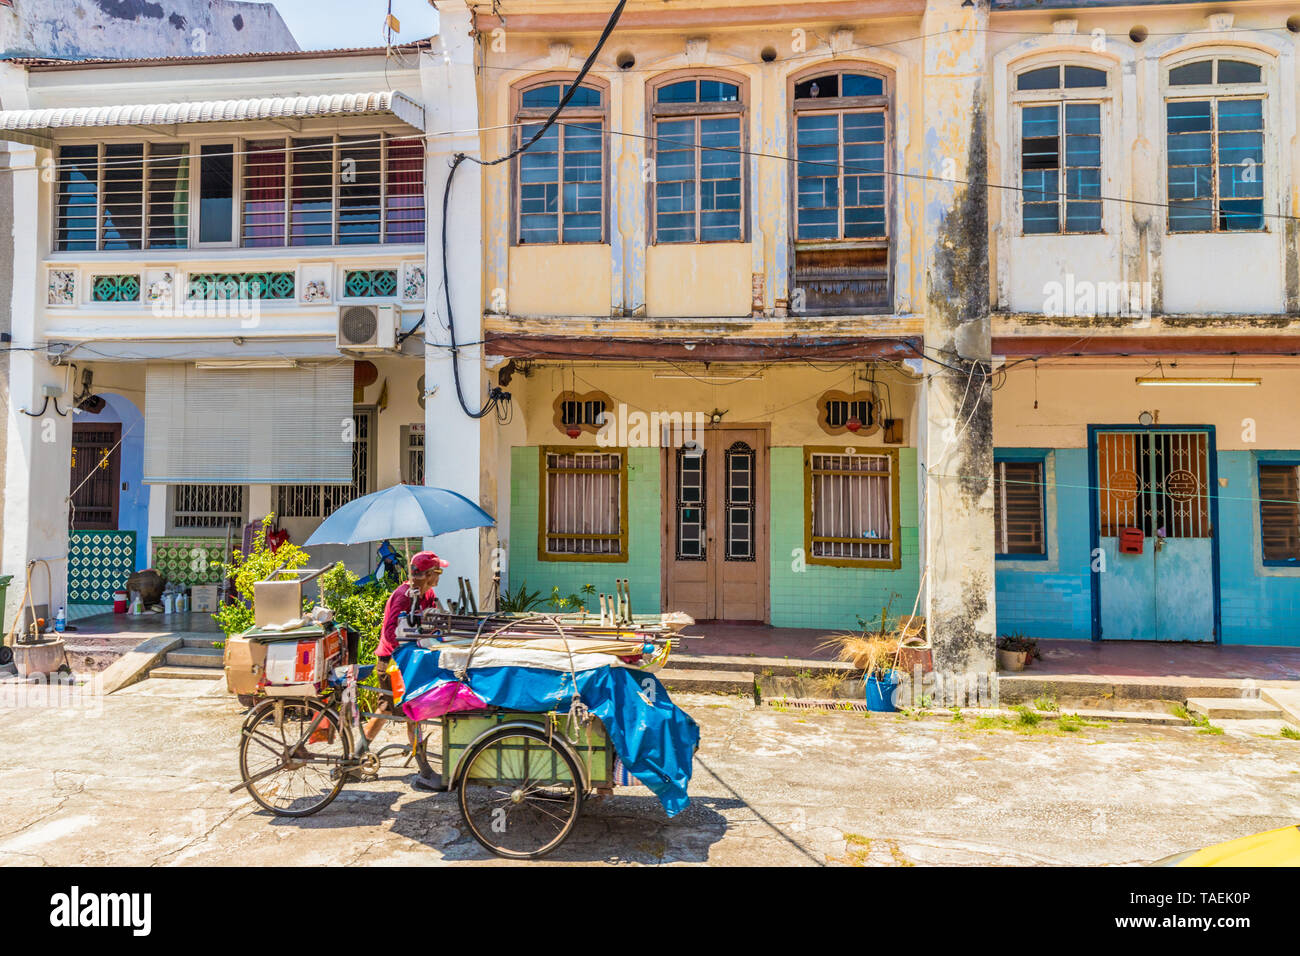 A streetv scene in George Town Malaysia Stock Photo